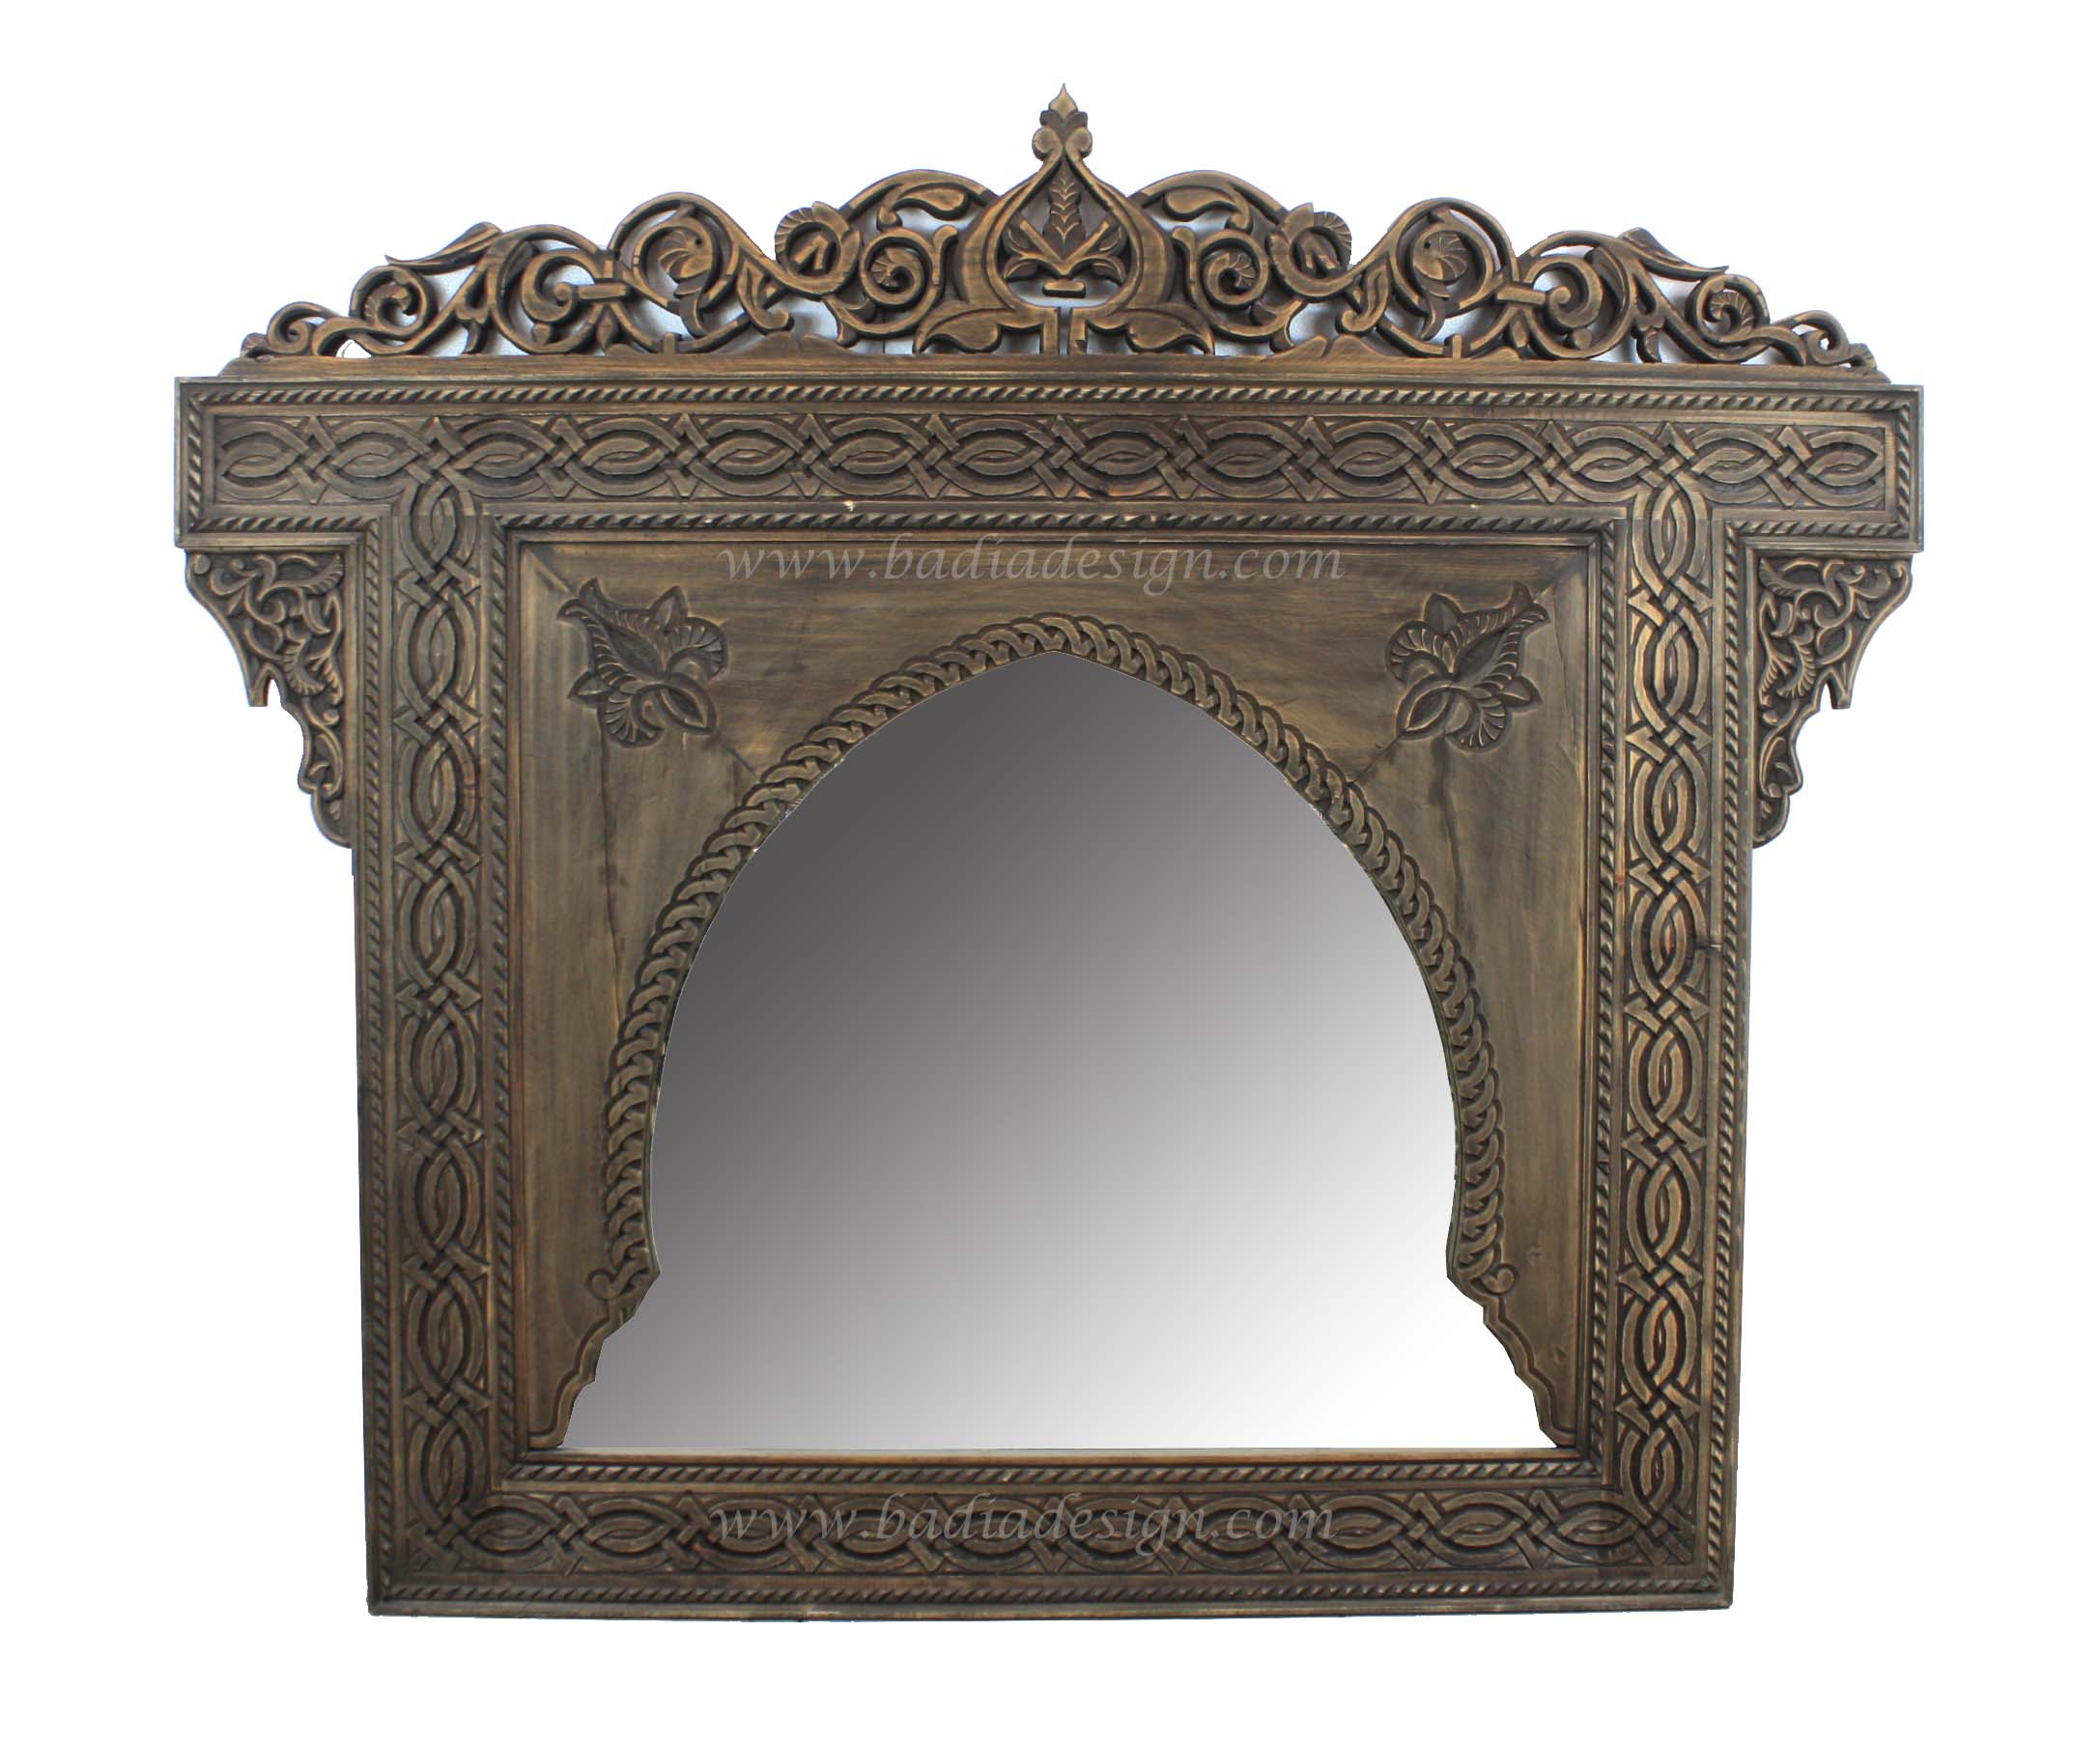 moroccan-hand-carved-wooden-mirror-m-w013.jpg